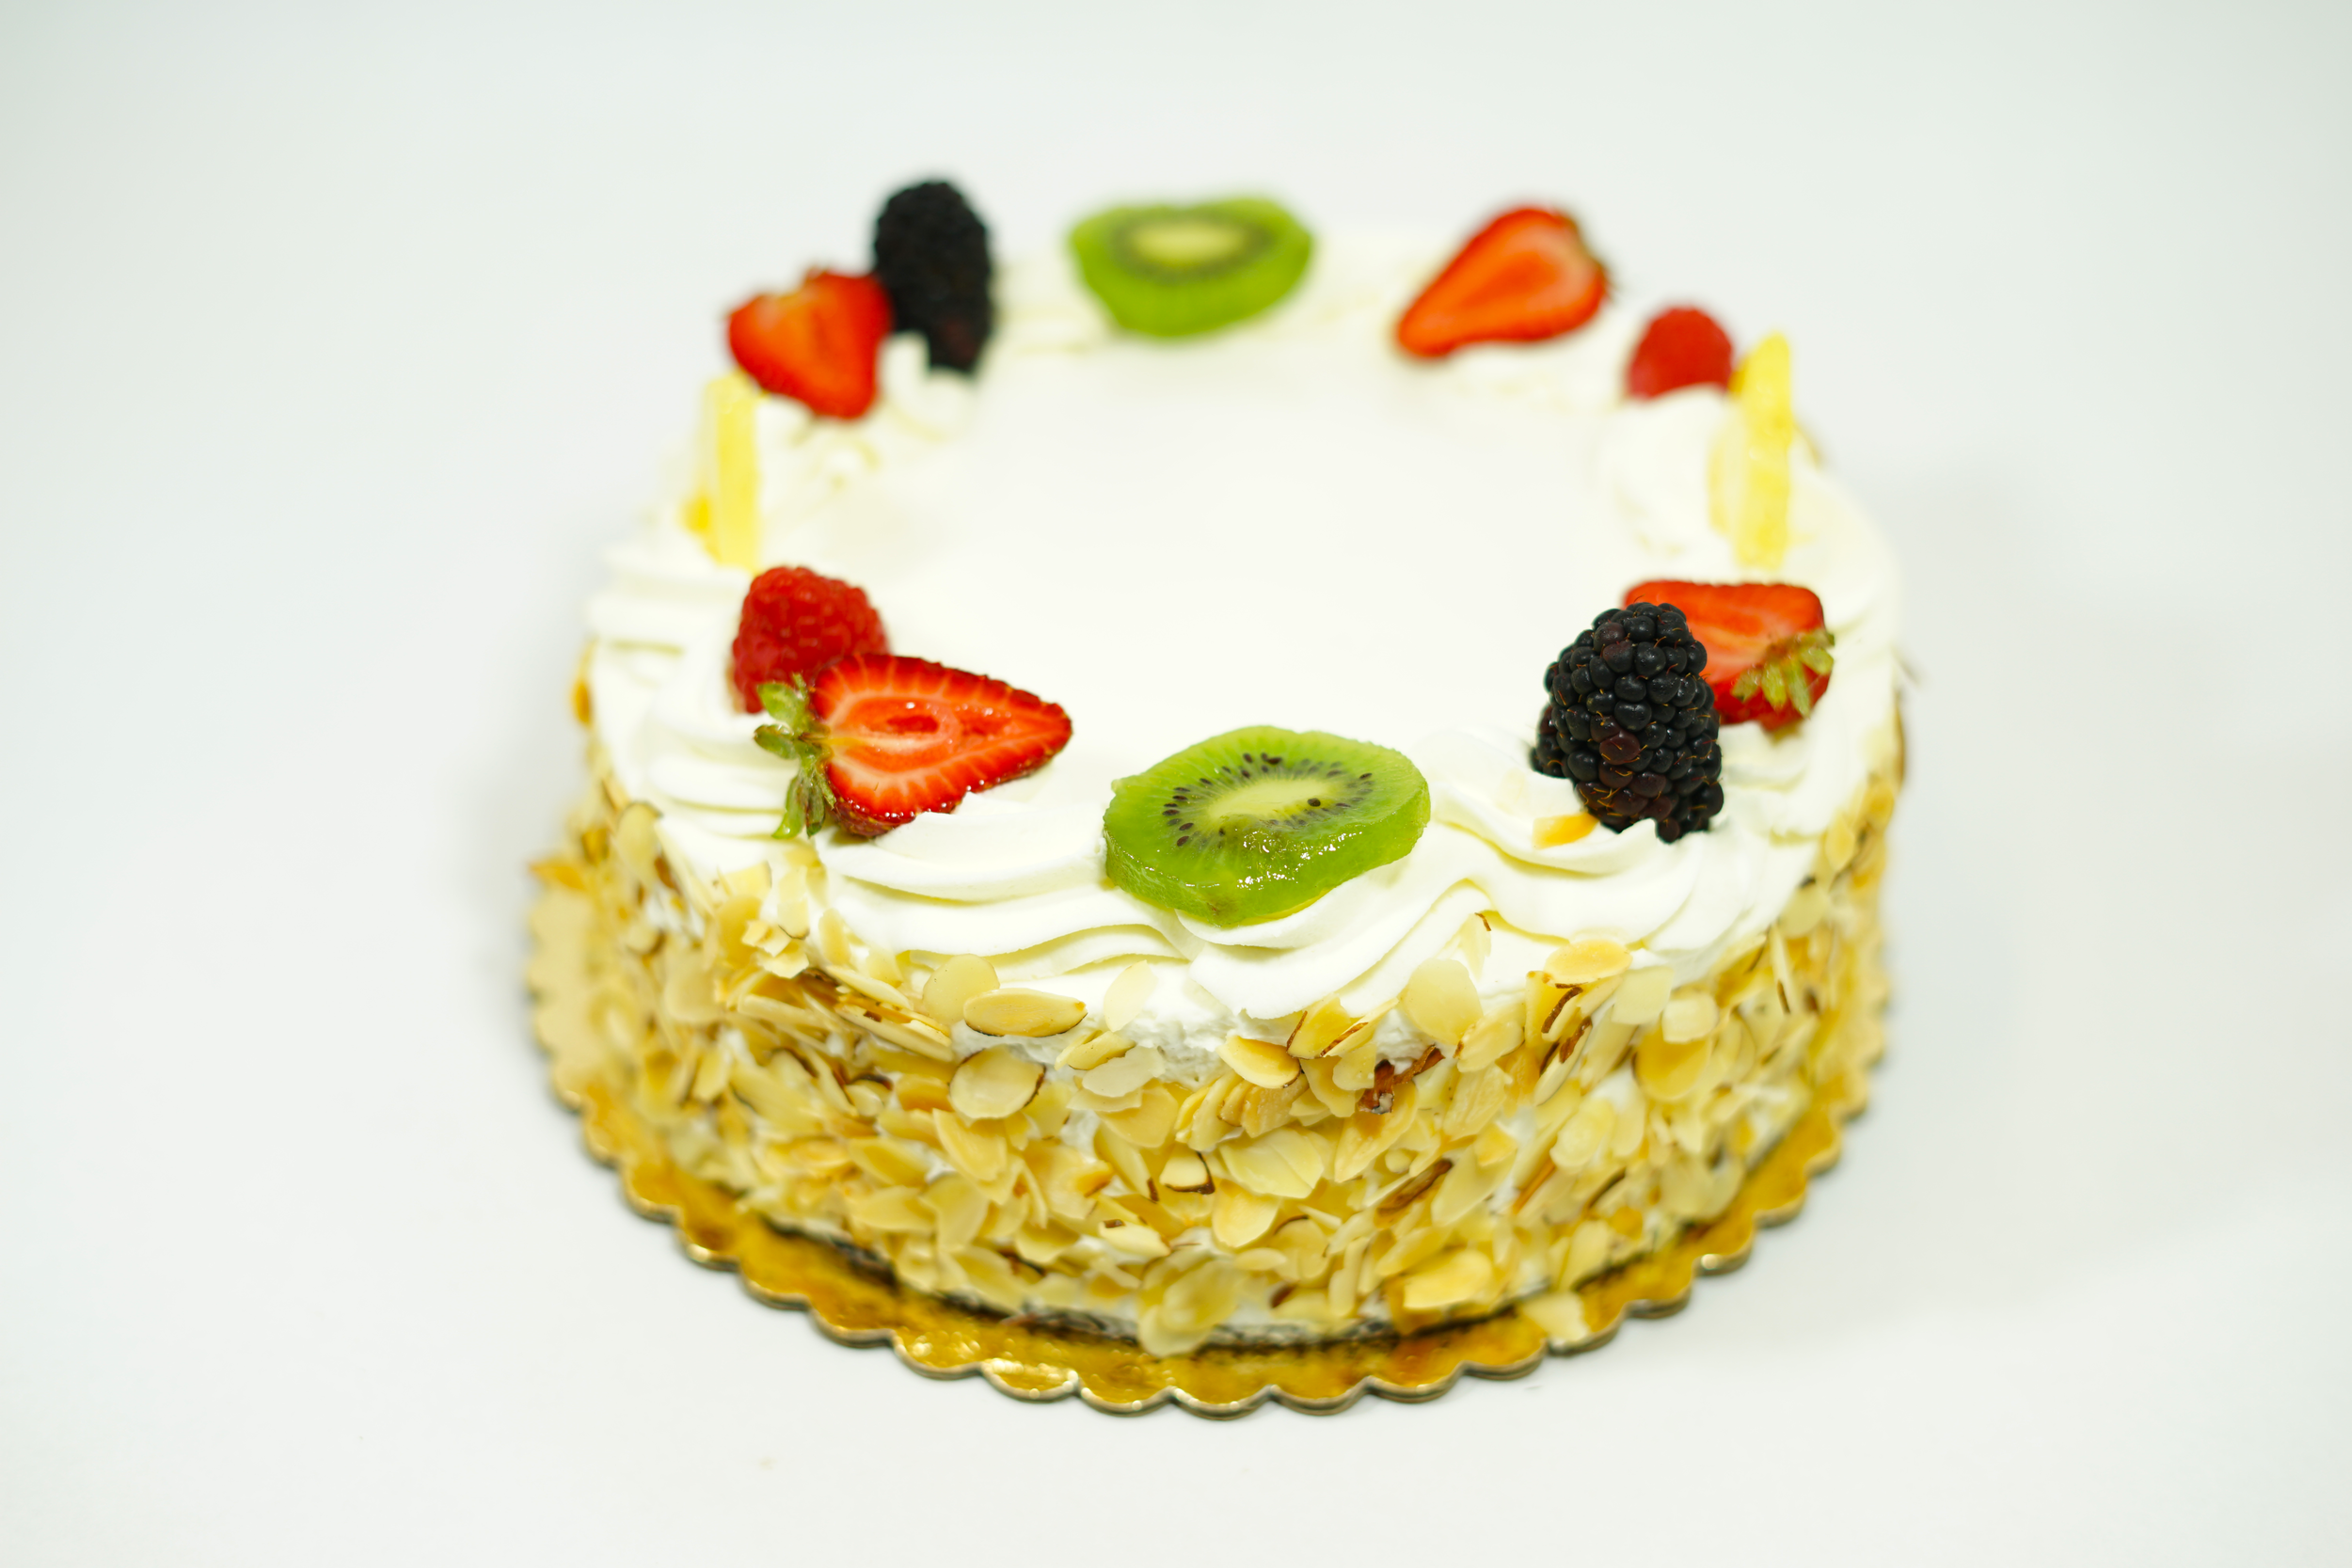 Nicois - A white cake with raspberry syrup, a layer of apricot preserve, Bavarian cream with raspberry coulis and fresh seasonal fruits. Iced with whip cream, sugar fondant and toasted slivered almonds on the sides.